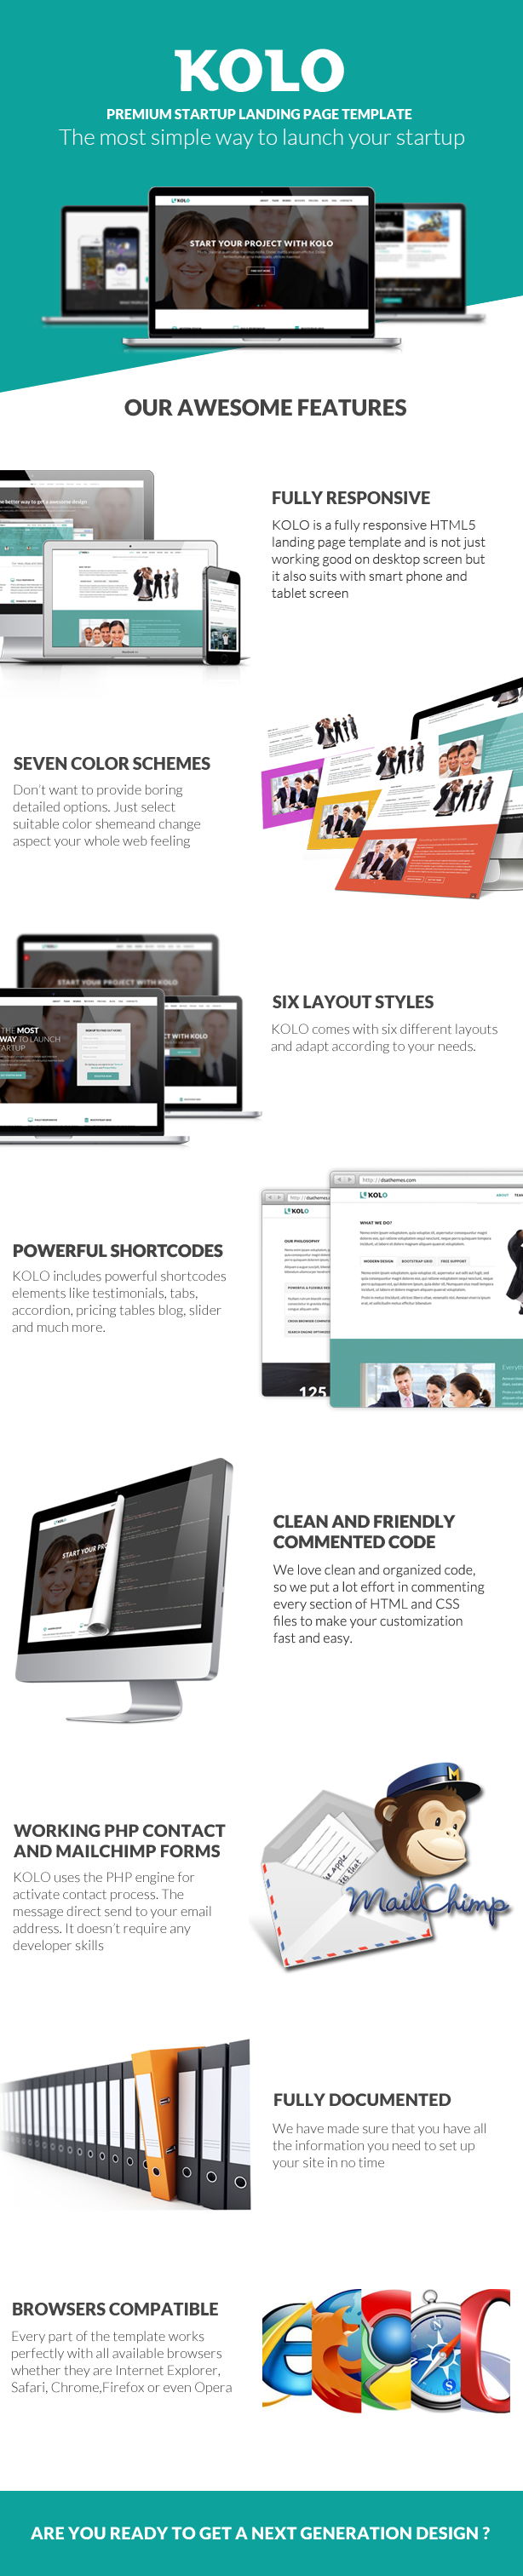 kolou-html-bootstratp-lannding-page-html-dci-marketplace-sell-buy-themes